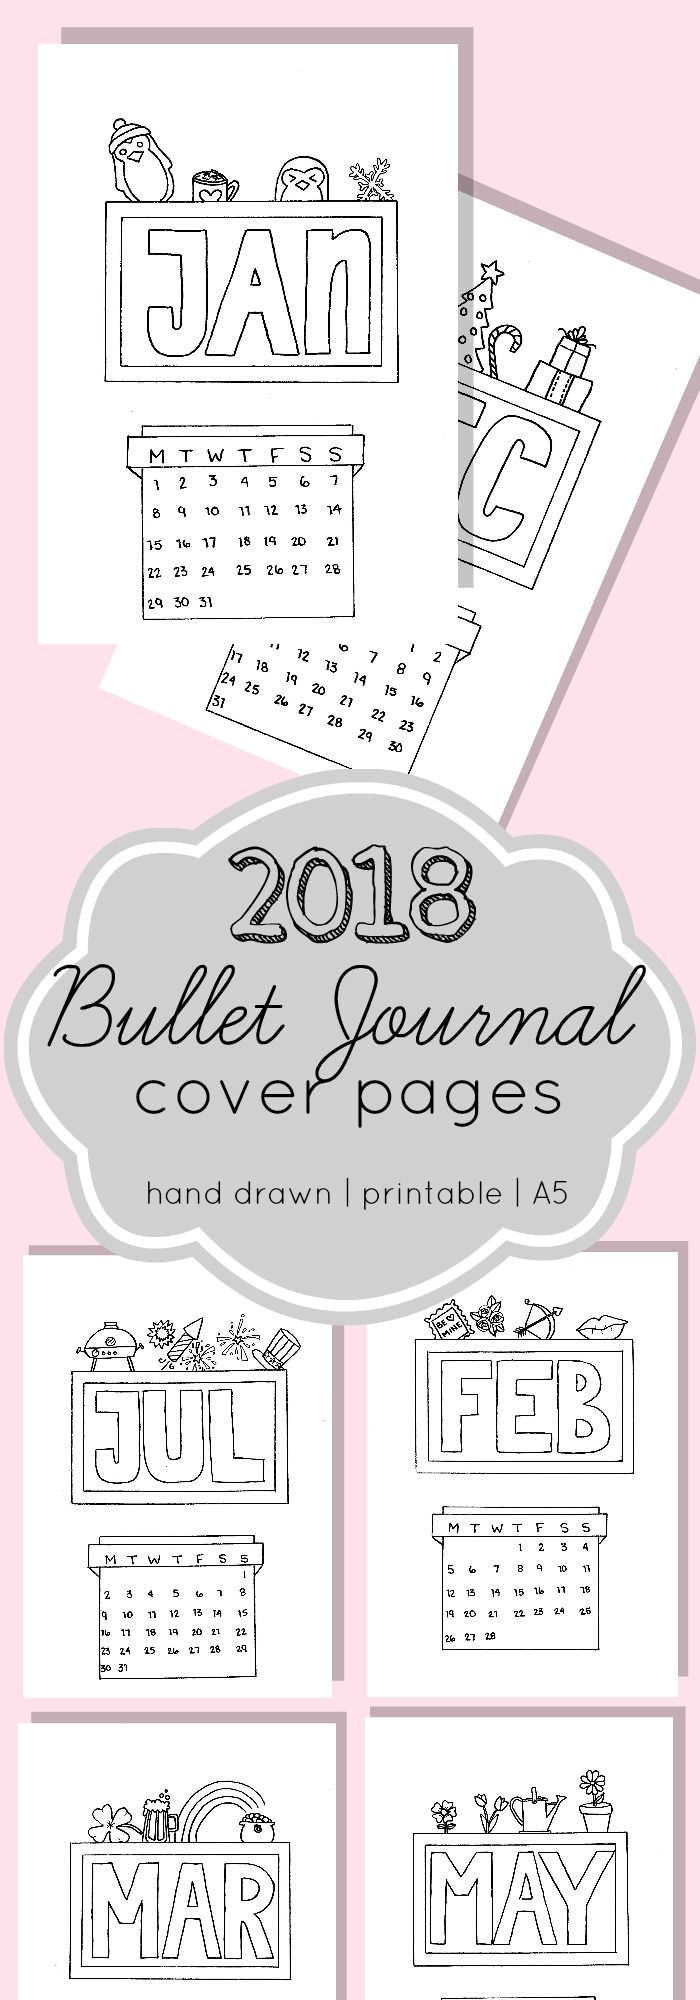 graphic about Journal Cover Printable identify Printable 2018 Bullet Magazine Include Web pages. A5 measurement consequently they